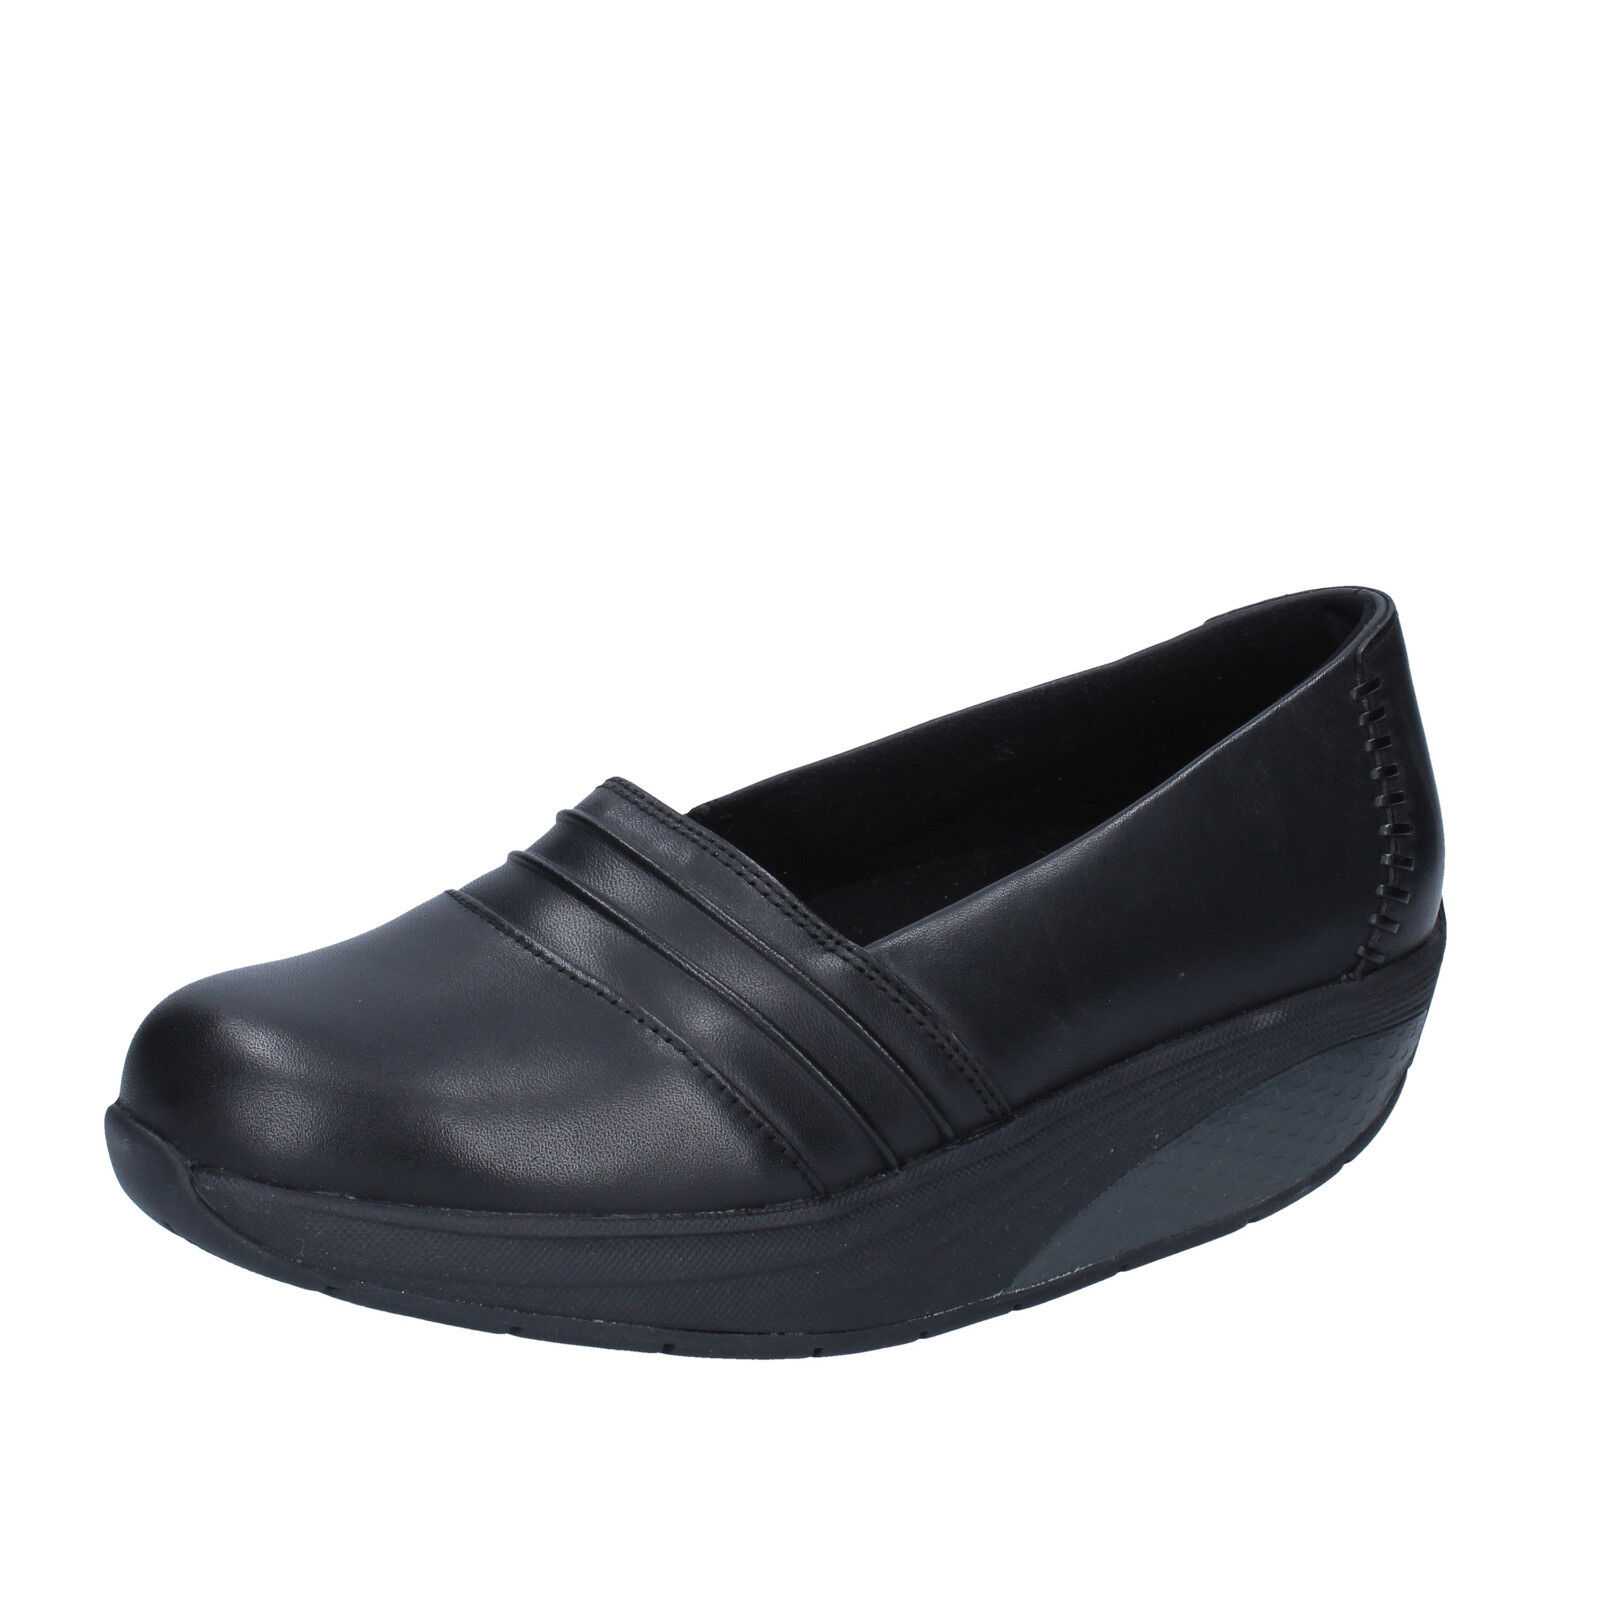 donna MBT 37 EU slip on mocassini nero pelle performance BY262-C